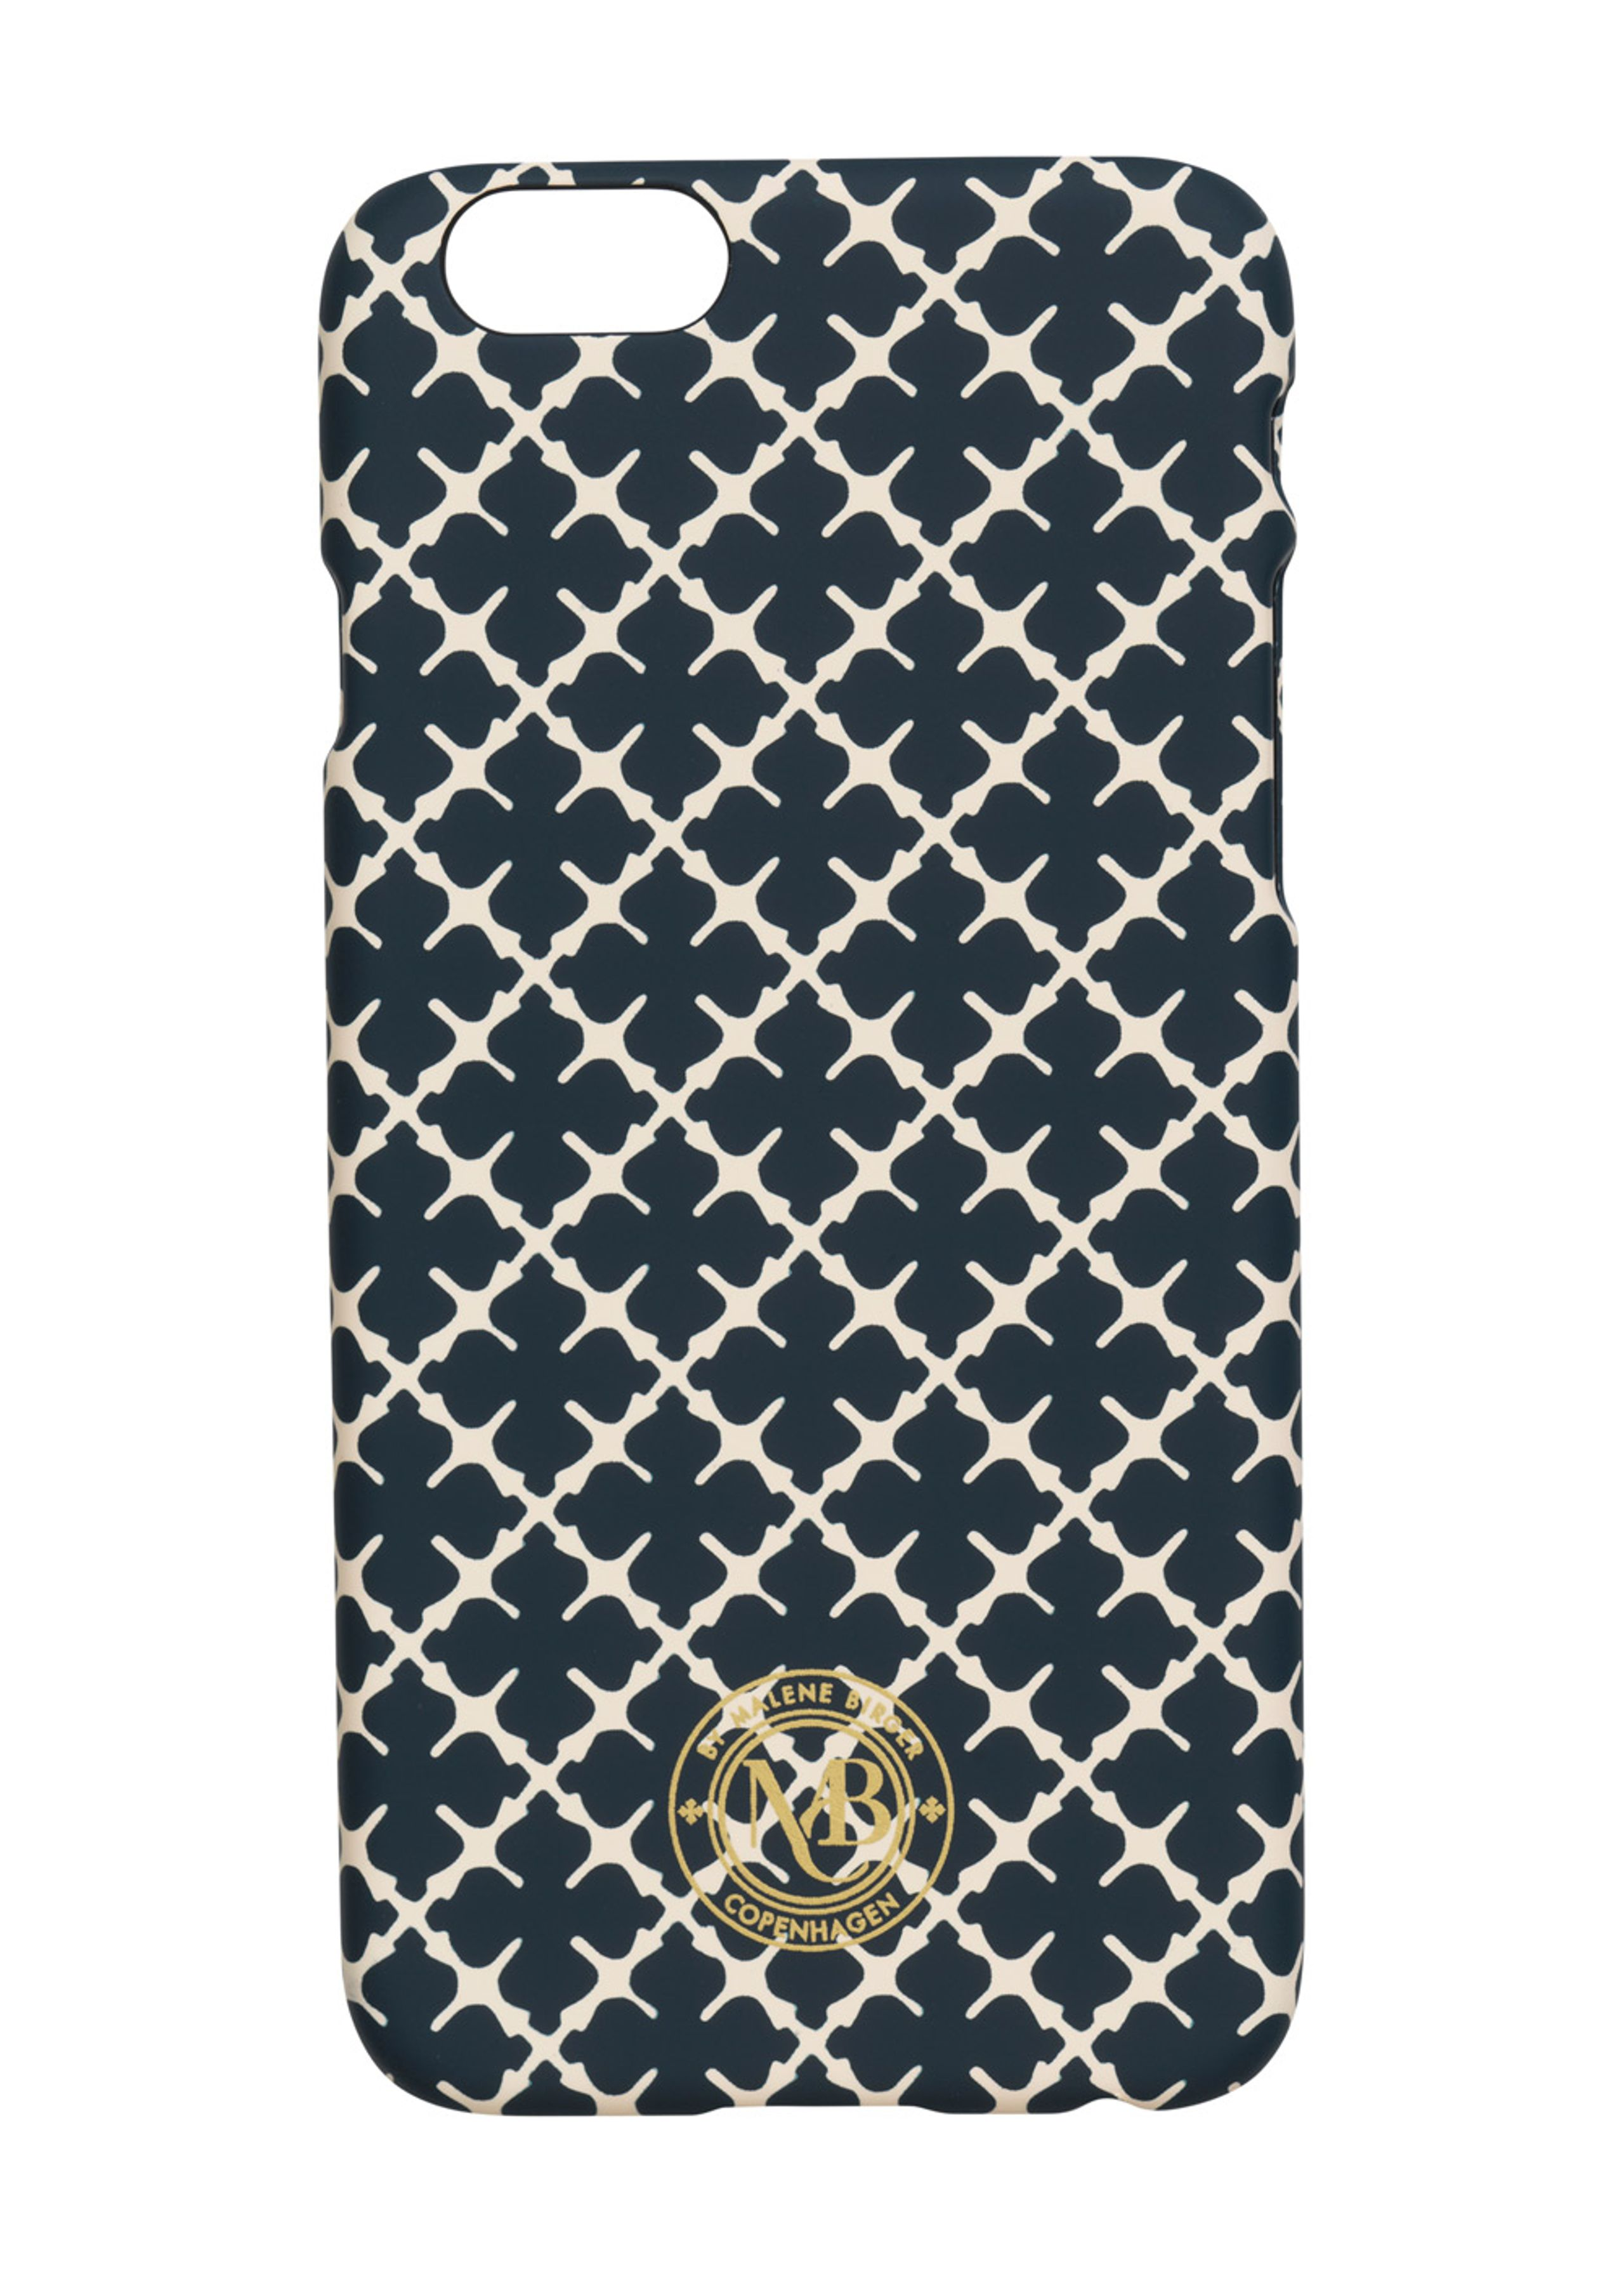 bab724f67e0 By Malene Birger - iPhone 6 cover - Pamsy6 - Navy Signature